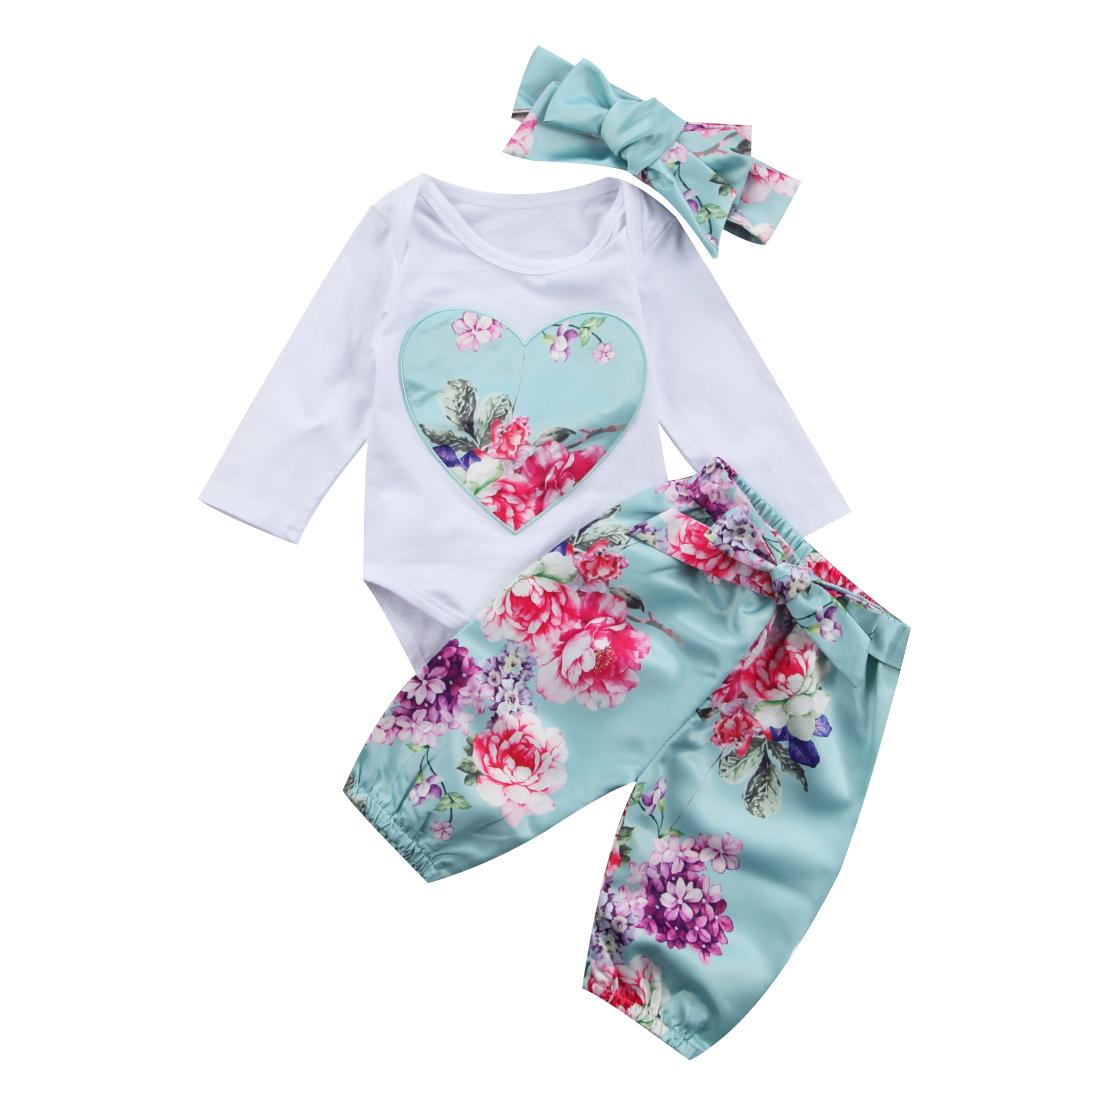 accfa9cafdf Baby Girls Clothing Sets Autumn Love Heart Floral Newborn Baby Girls ...